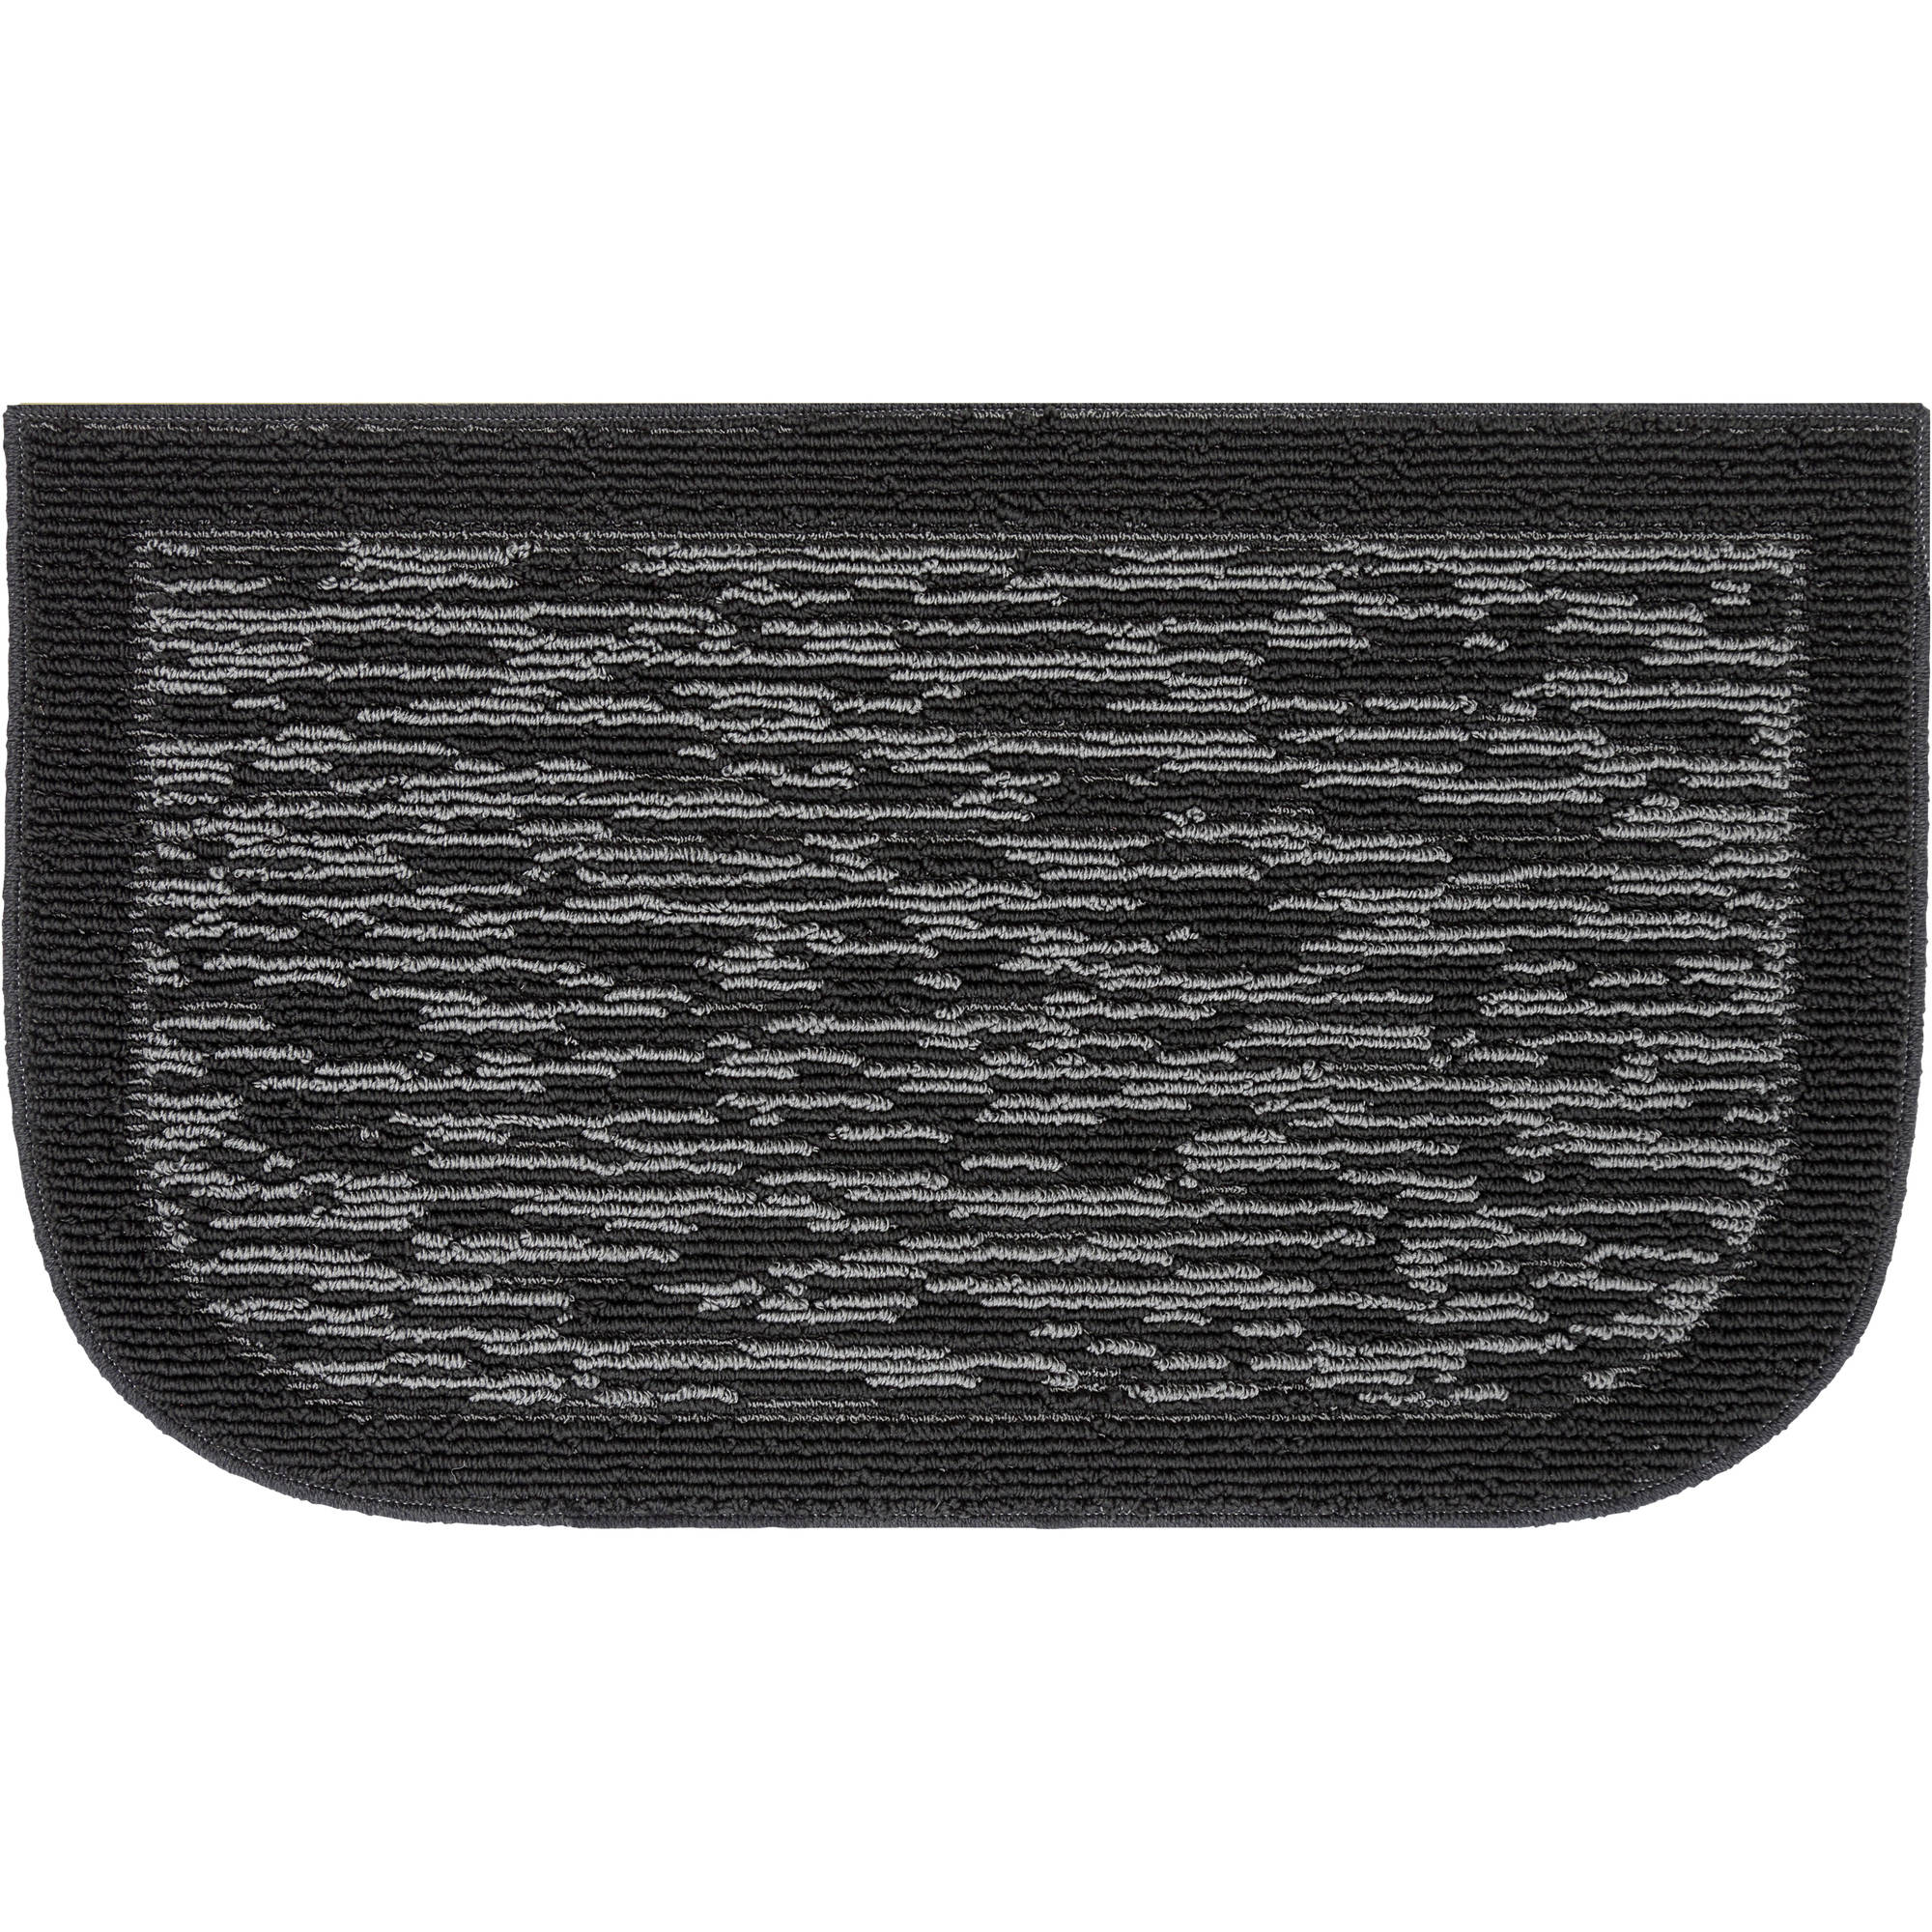 "Mohawk Home Canopy Slice Kitchen Rug, Moonless Night, 1'6"" x 2'6"""